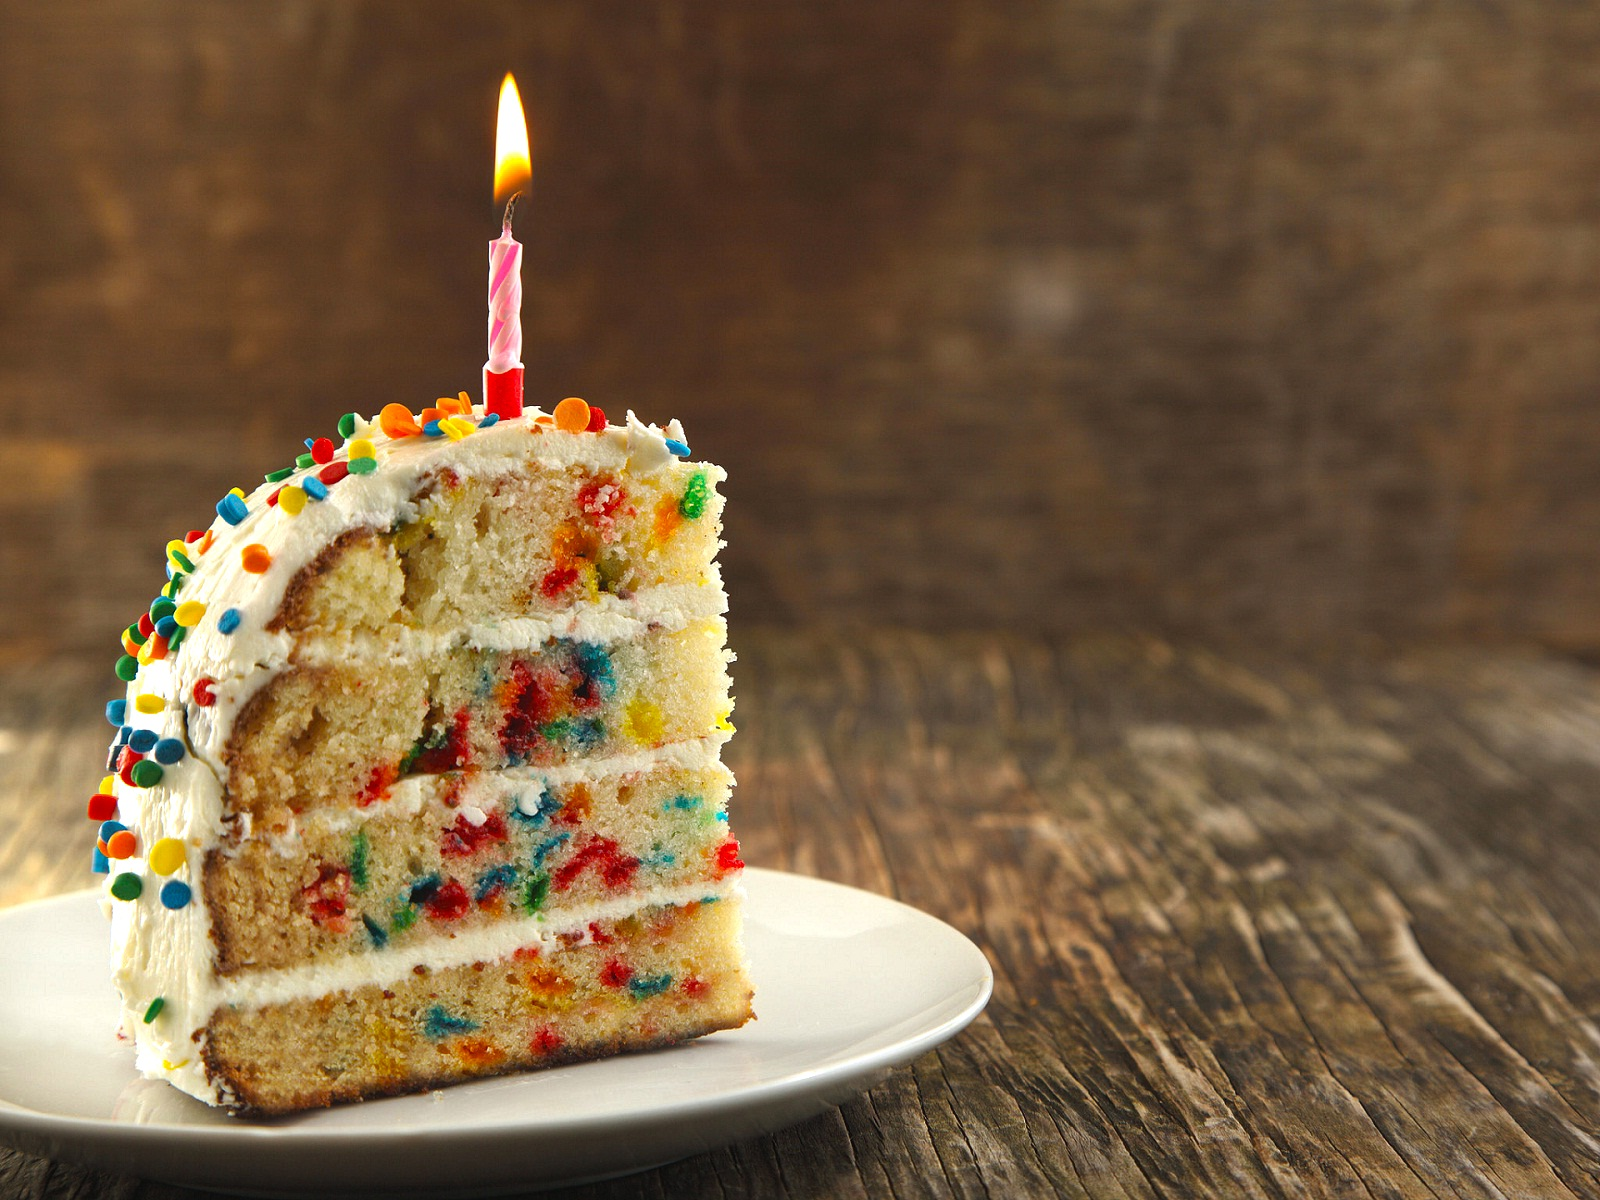 Birthday Cake In Hd Images : happy-birthday-cake-hd-wallpaper - The Resilience Post